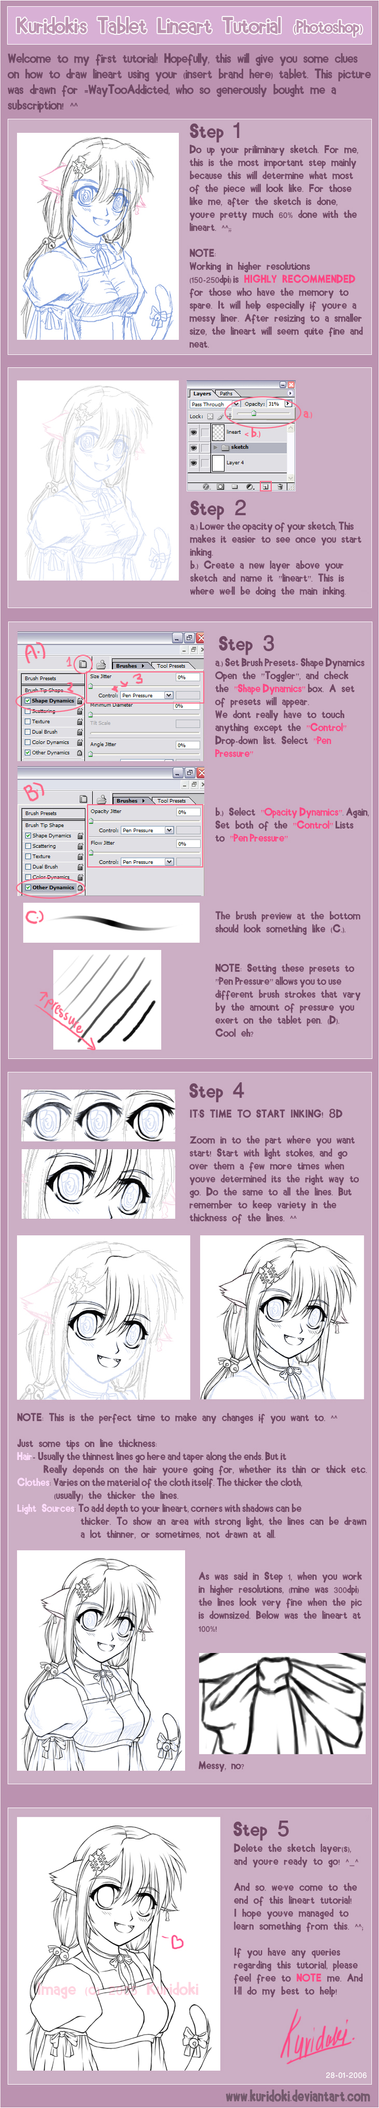 Photoshop lineart tut. by Tutorials101